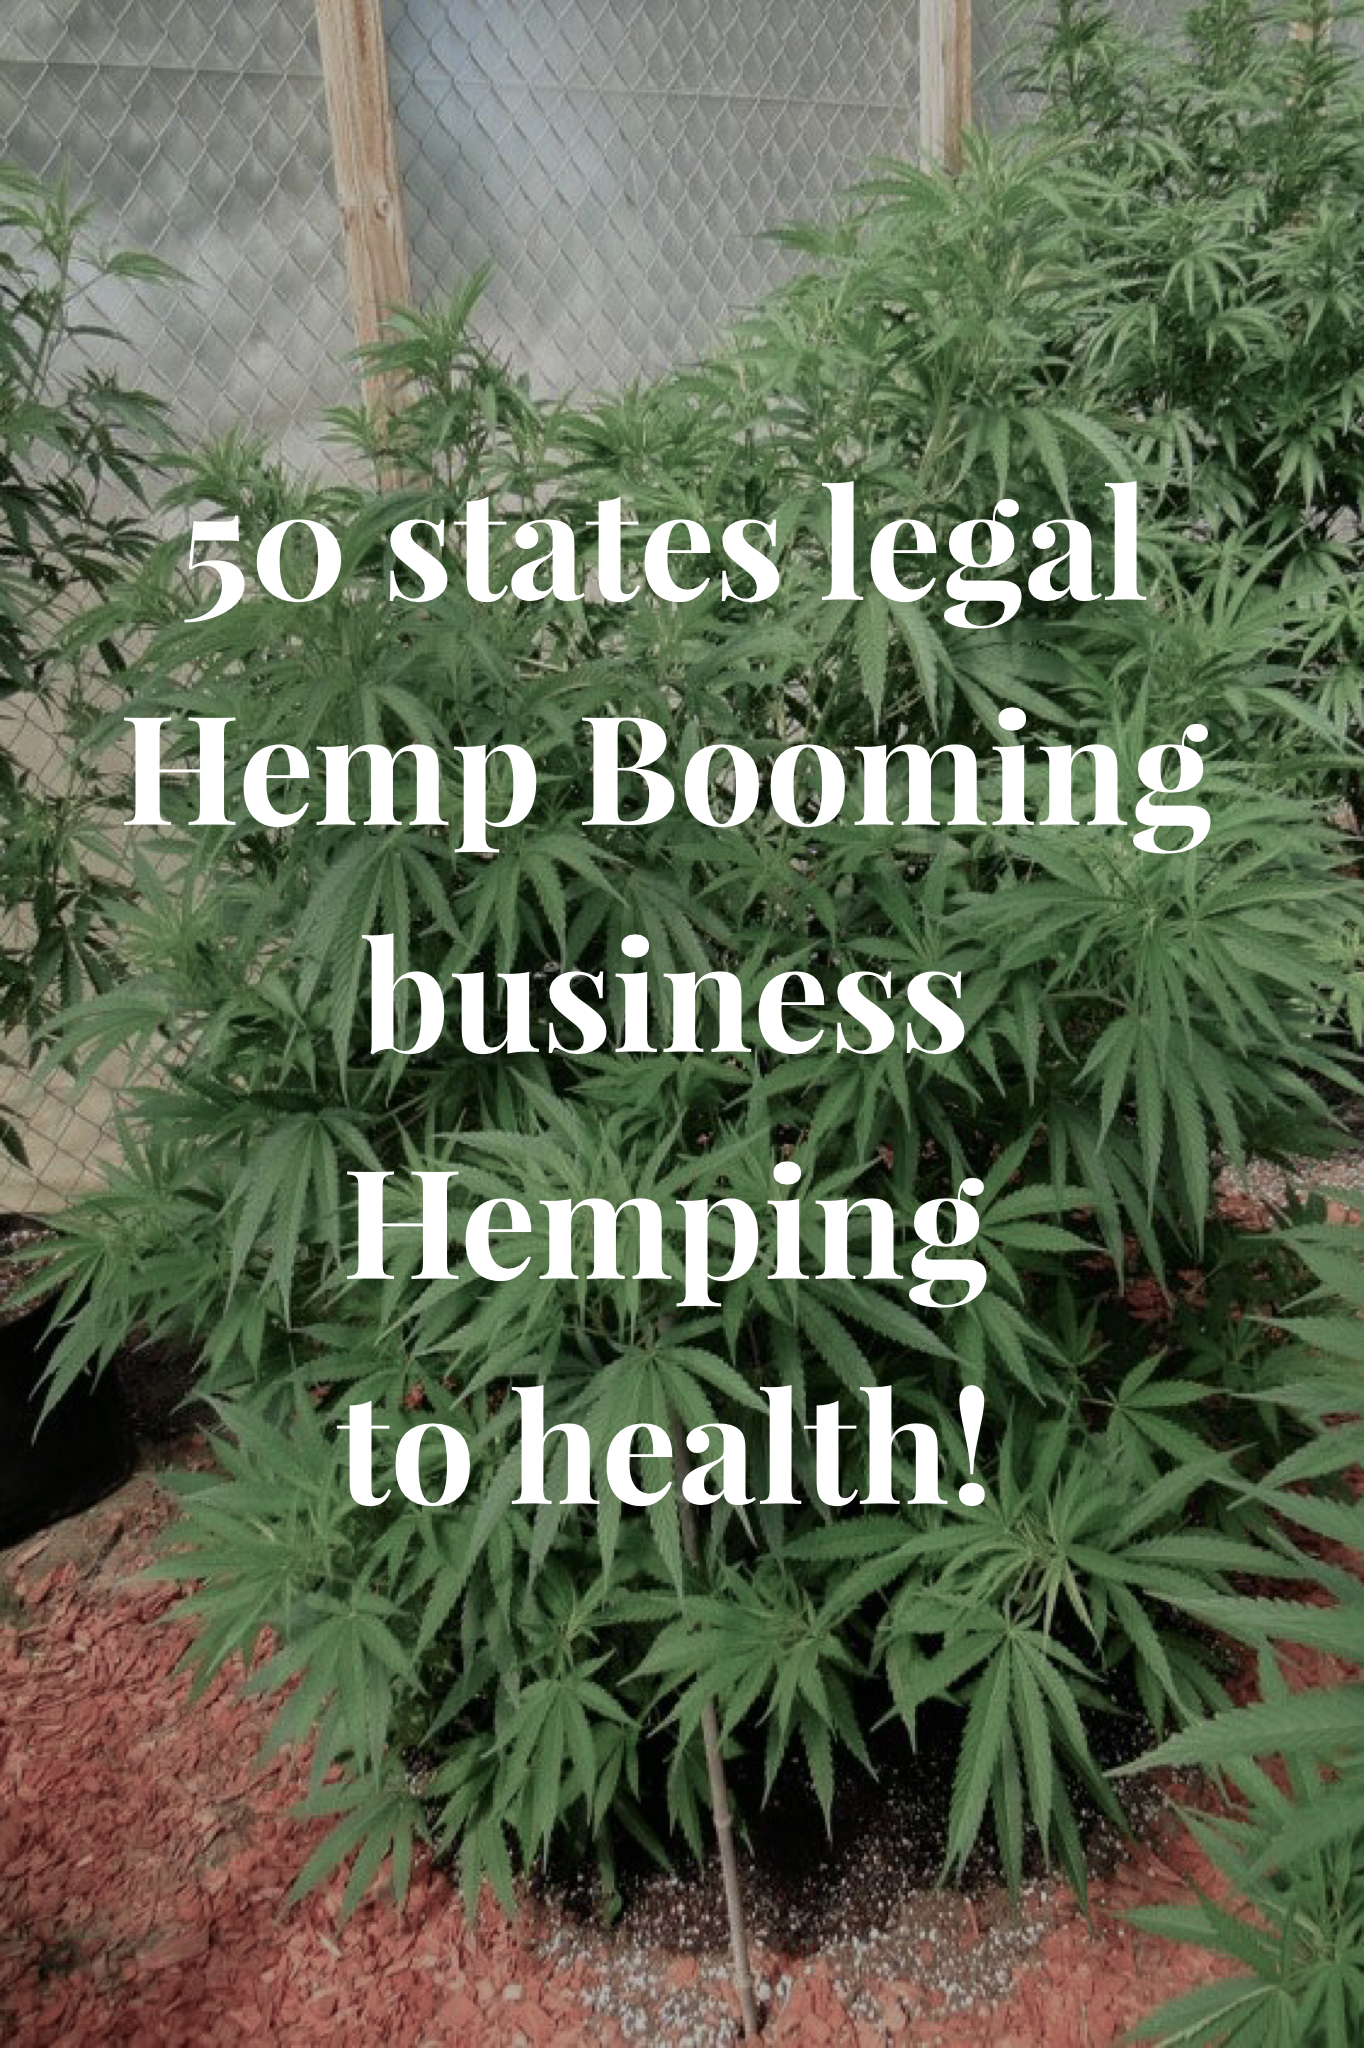 Selling legal hemp from home! Averaging 20k in Sales a month